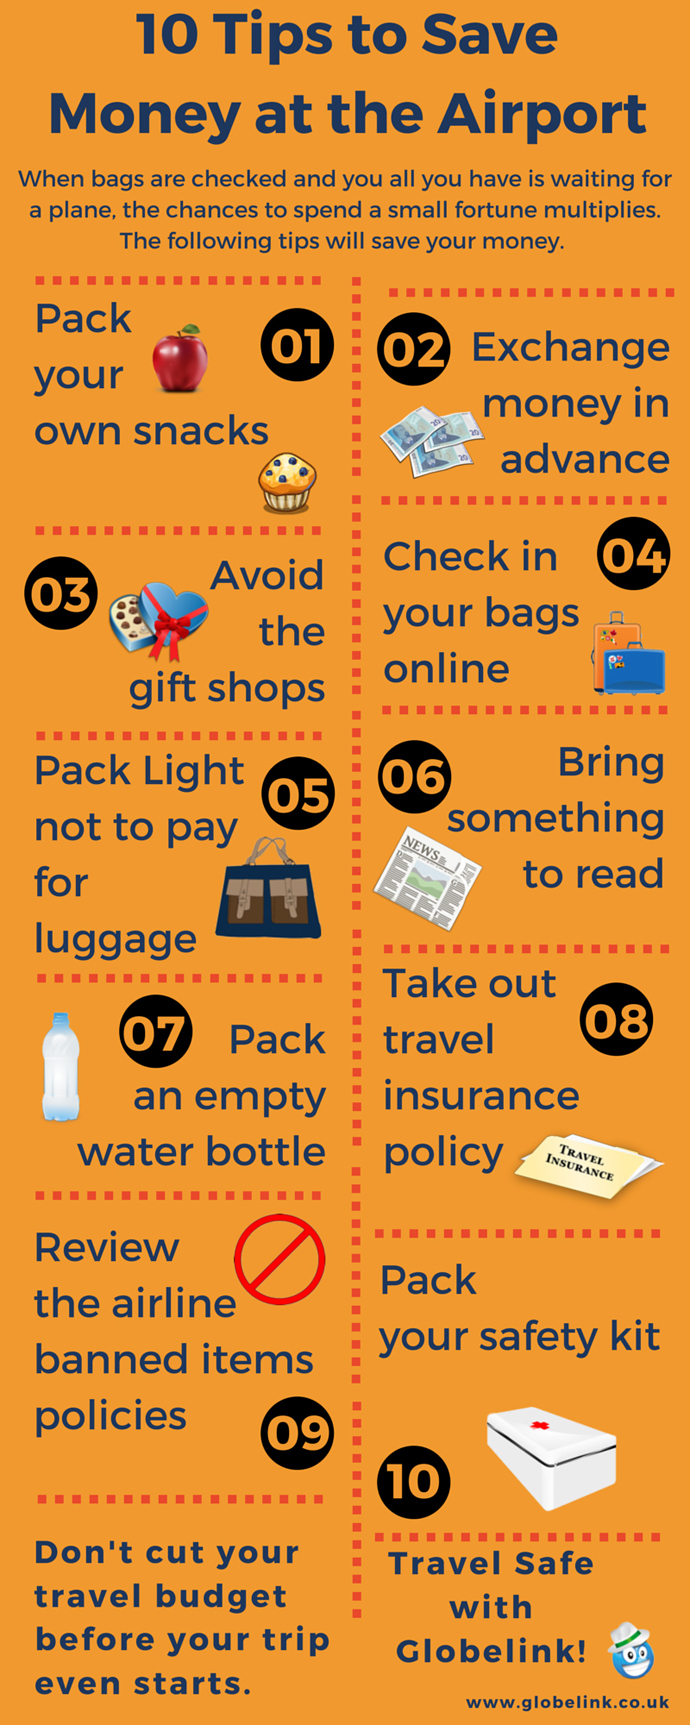 Tips to Save Money at the Airport